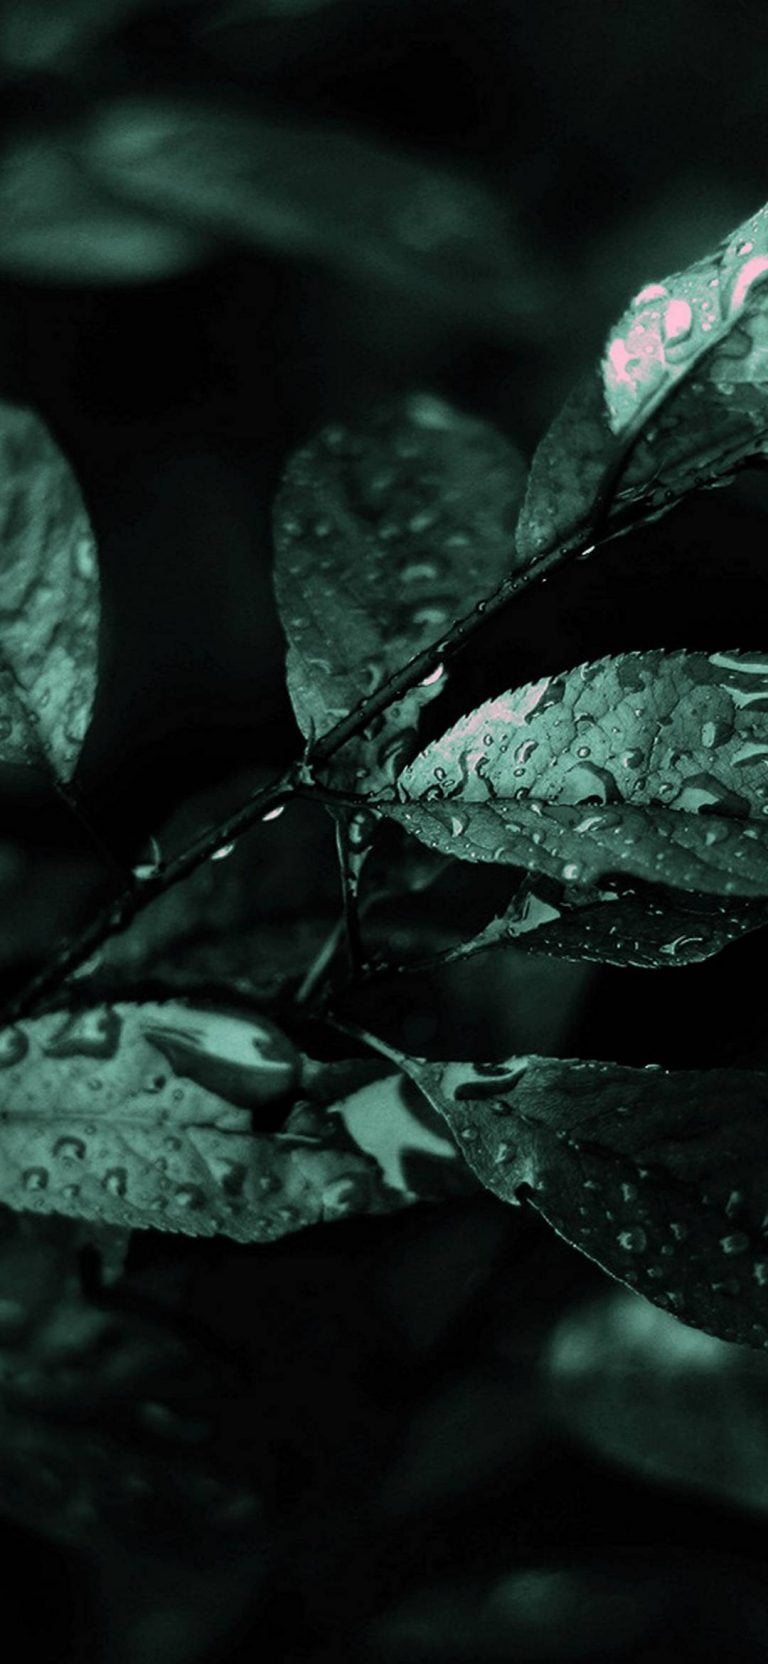 Nature-Dark-Leaves-Macro-Depth-1080x2340-768x1664-2 - 51+ BEST Free vivo Z1 Pro Phone Wallpapers [year]